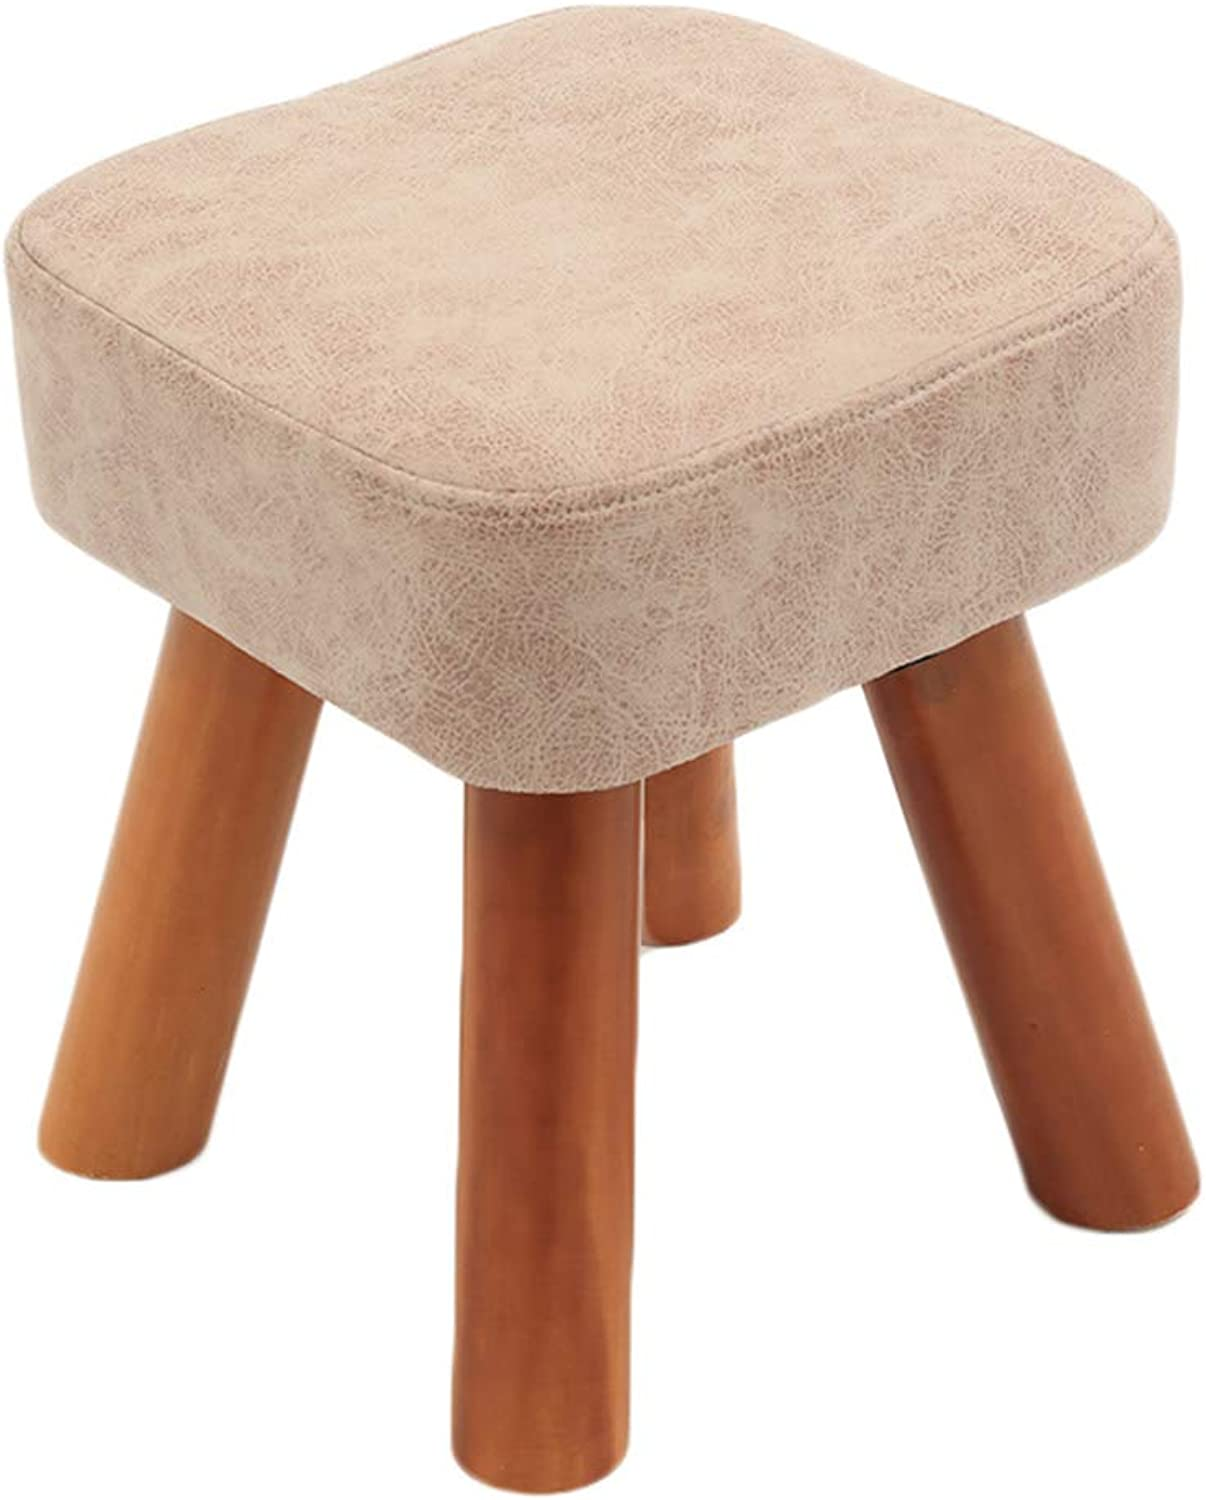 CAIJUN Footstool Comfortable Multifunction Thick Sponge Solid Wood Frame Portable Indoor Gift, 4 colors, 2 Size (color   Beige, Size   28x28x25cm)